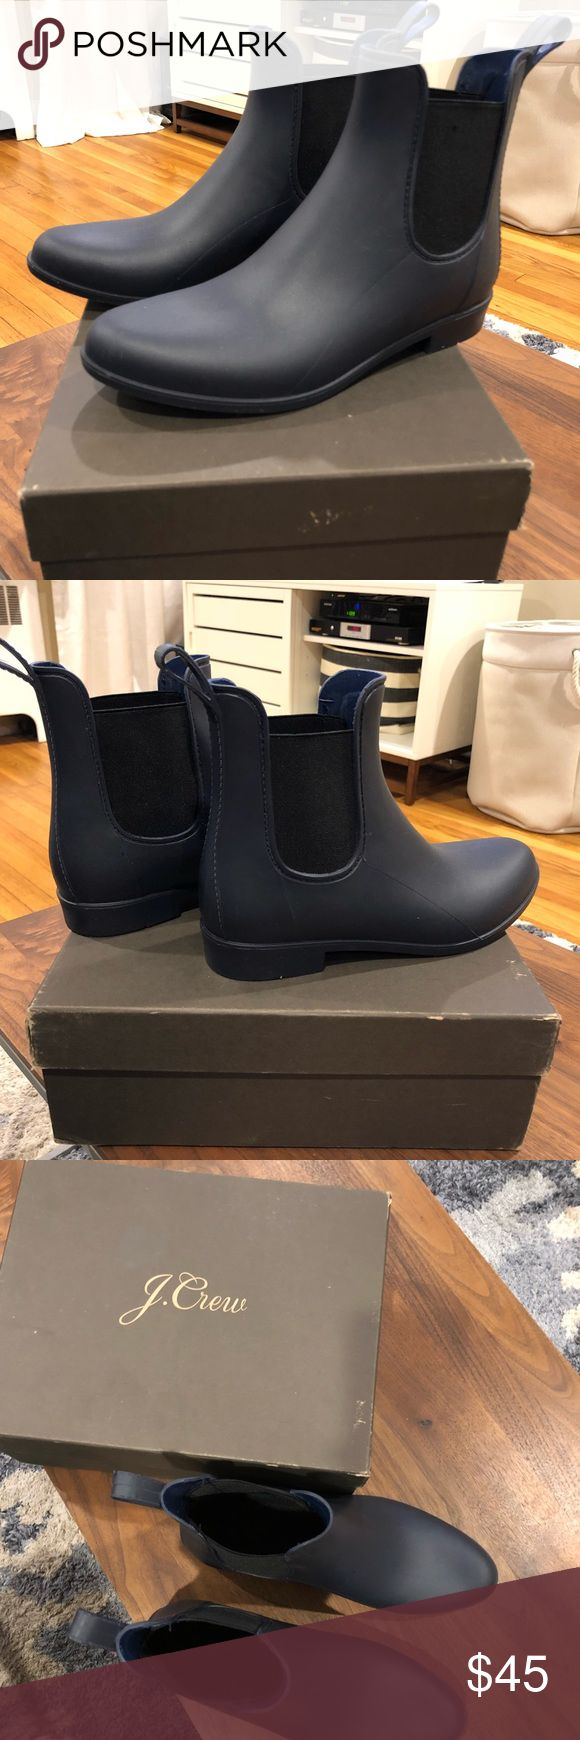 J Crew navy Chelsea boot Navy matte rain boot Worn one time only Box included Lightweight and stylish rain boot. Just in time for rainy spring J. Crew Shoes Winter & Rain Boots